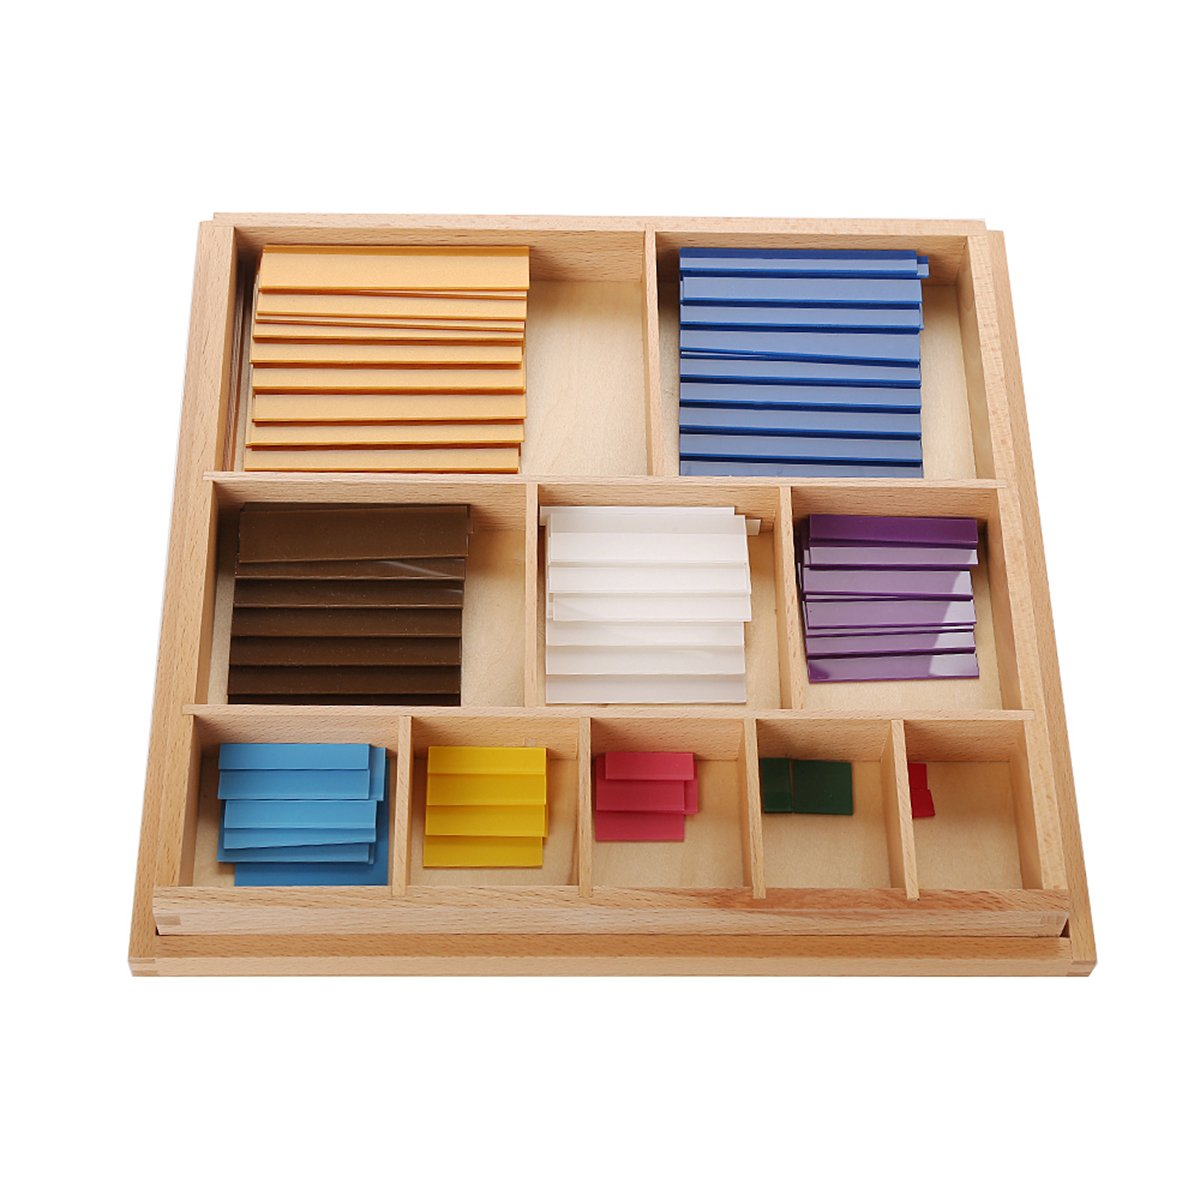 LEADER JOY Montessori Math Materials Decanomial Squares for Early Preschool Learning Toy